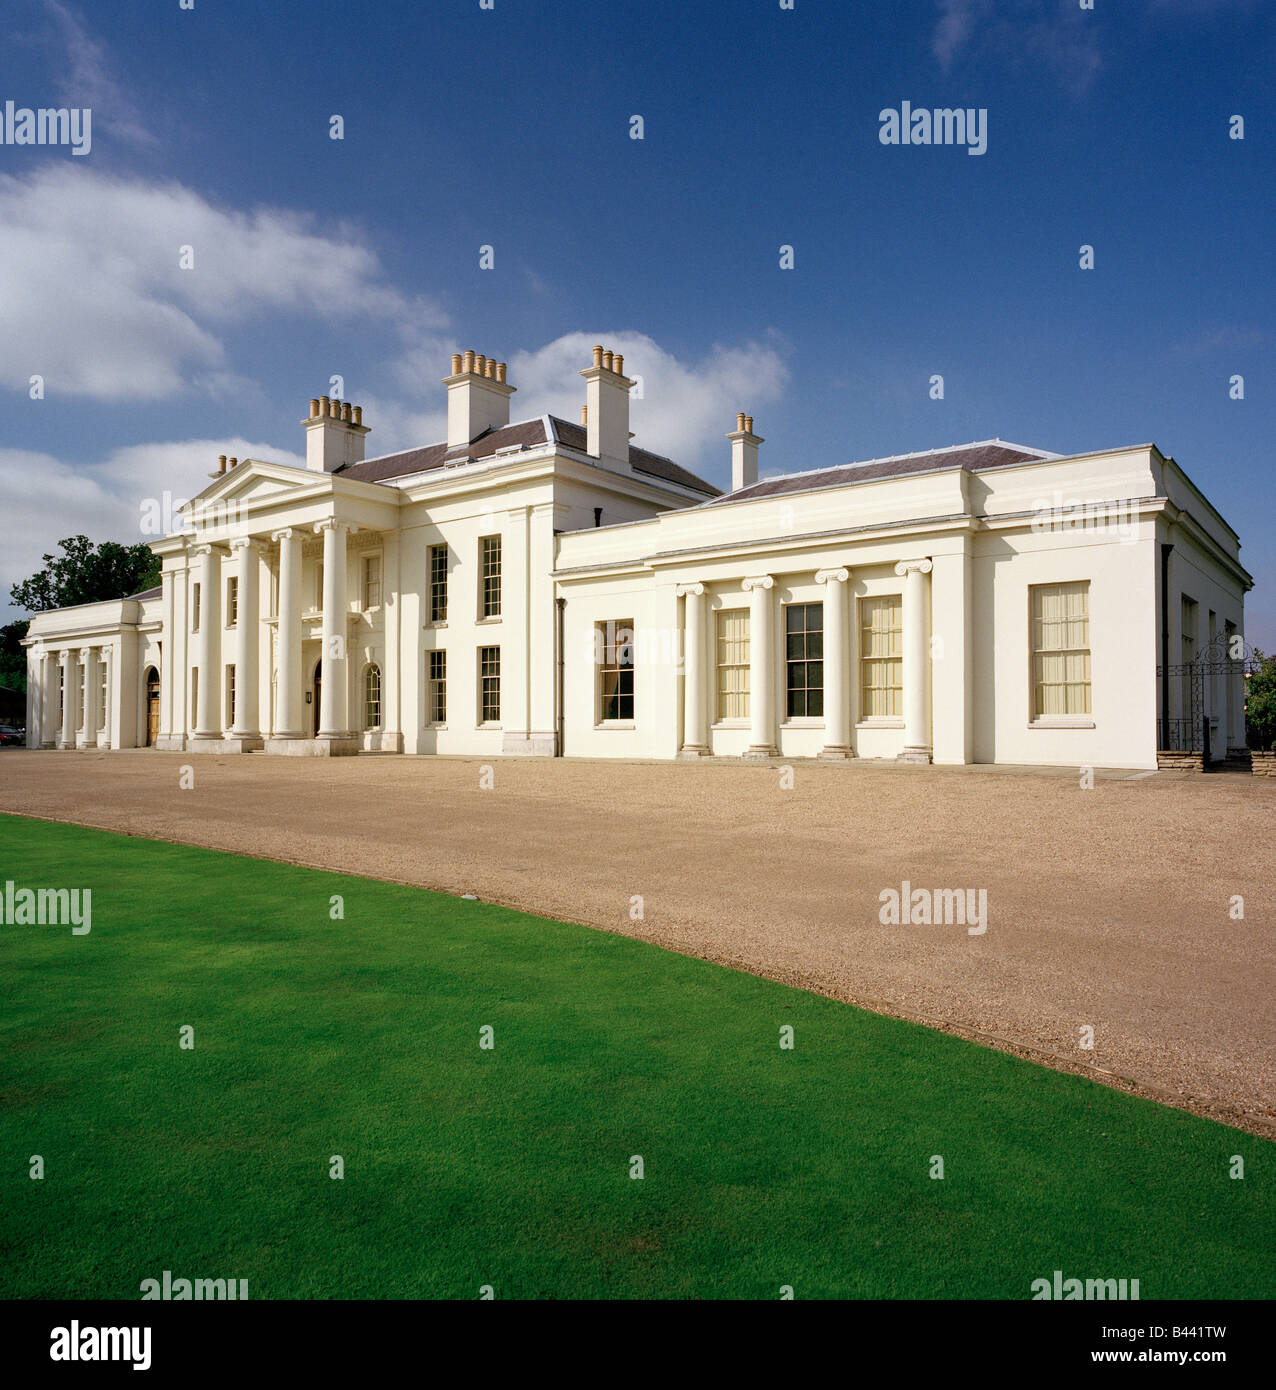 The recently refurbished Hylands House, Chelmsford, Essex, England, UK. - Stock Image